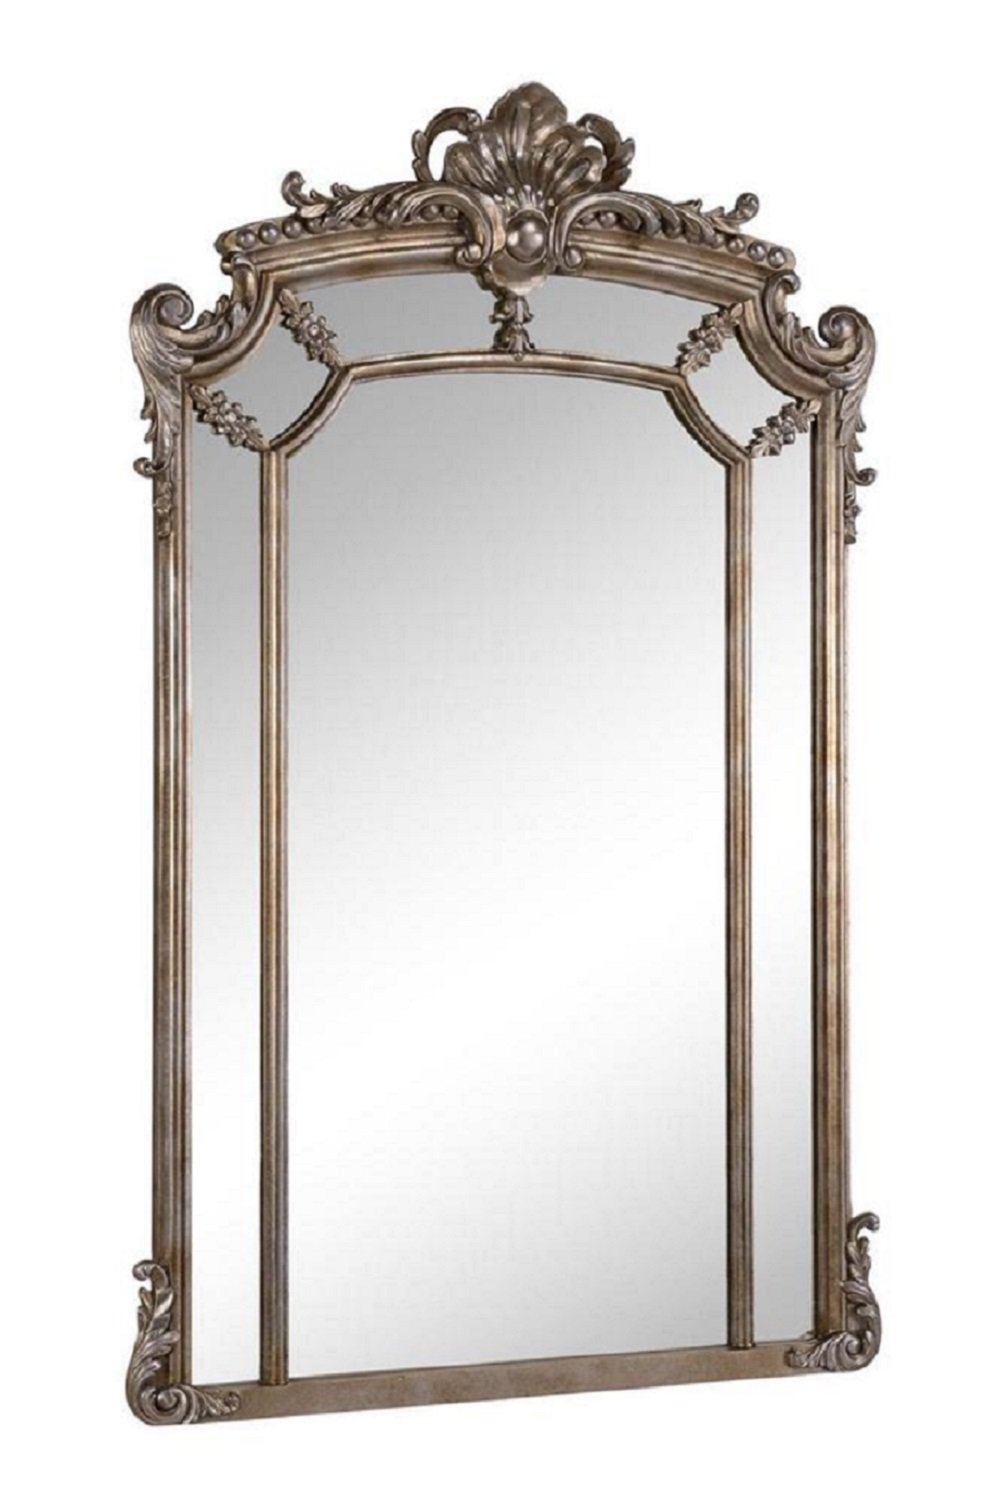 Arch & Crowned Top Wall Mounted Mirrors You'll Love In 2019 For Ekaterina Arch/crowned Top Wall Mirrors (Image 1 of 20)